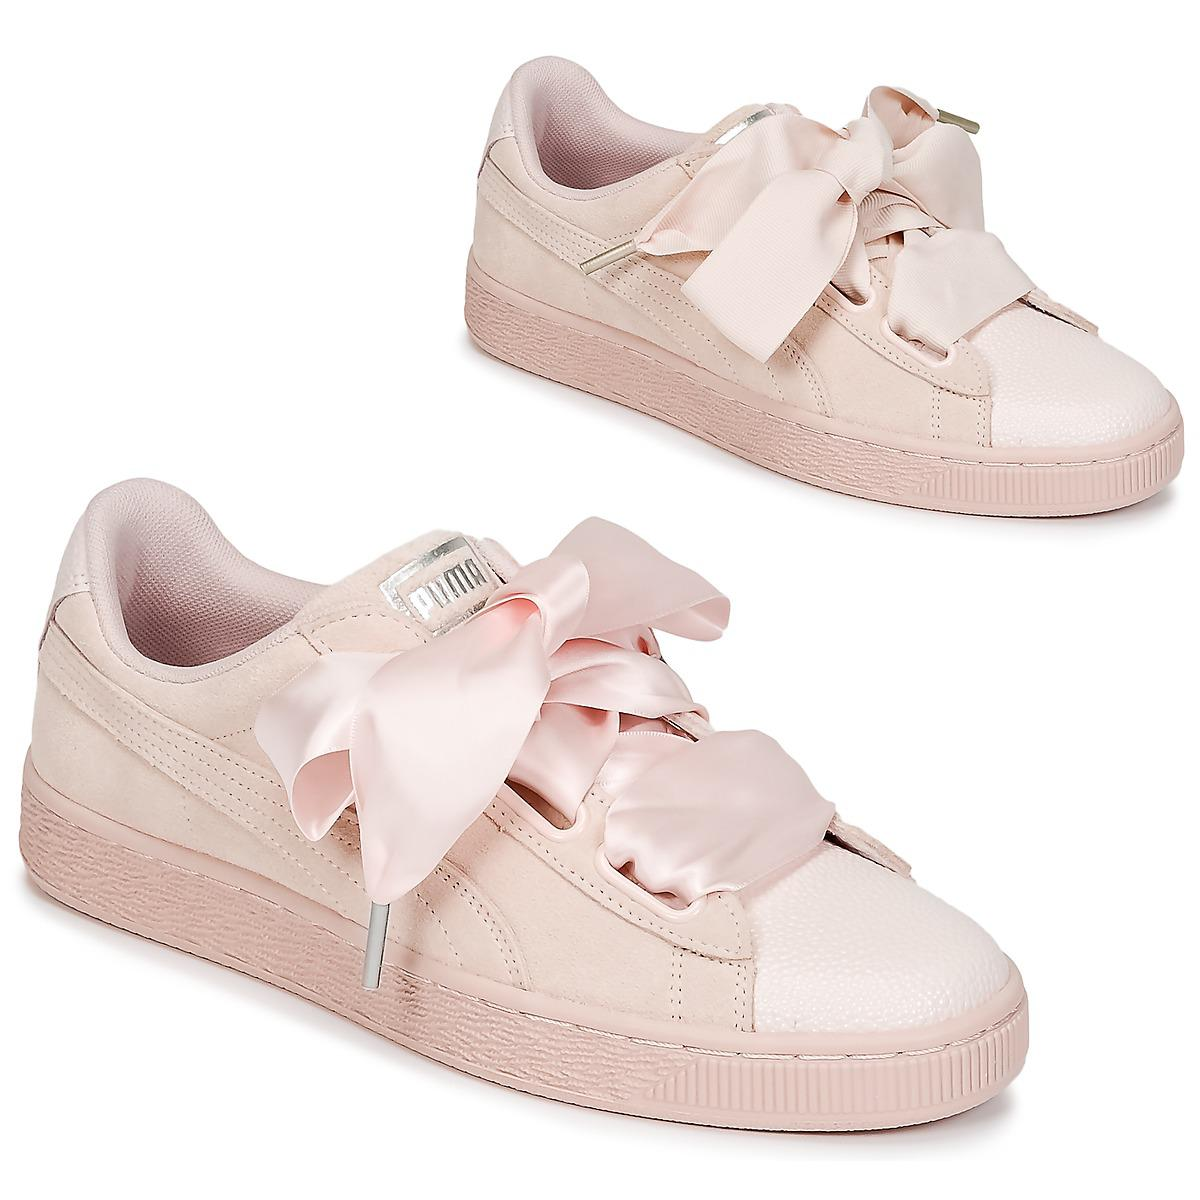 3845afa6a5d8 Puma Suede Heart Bubble W s Shoes (trainers) in Pink - Lyst